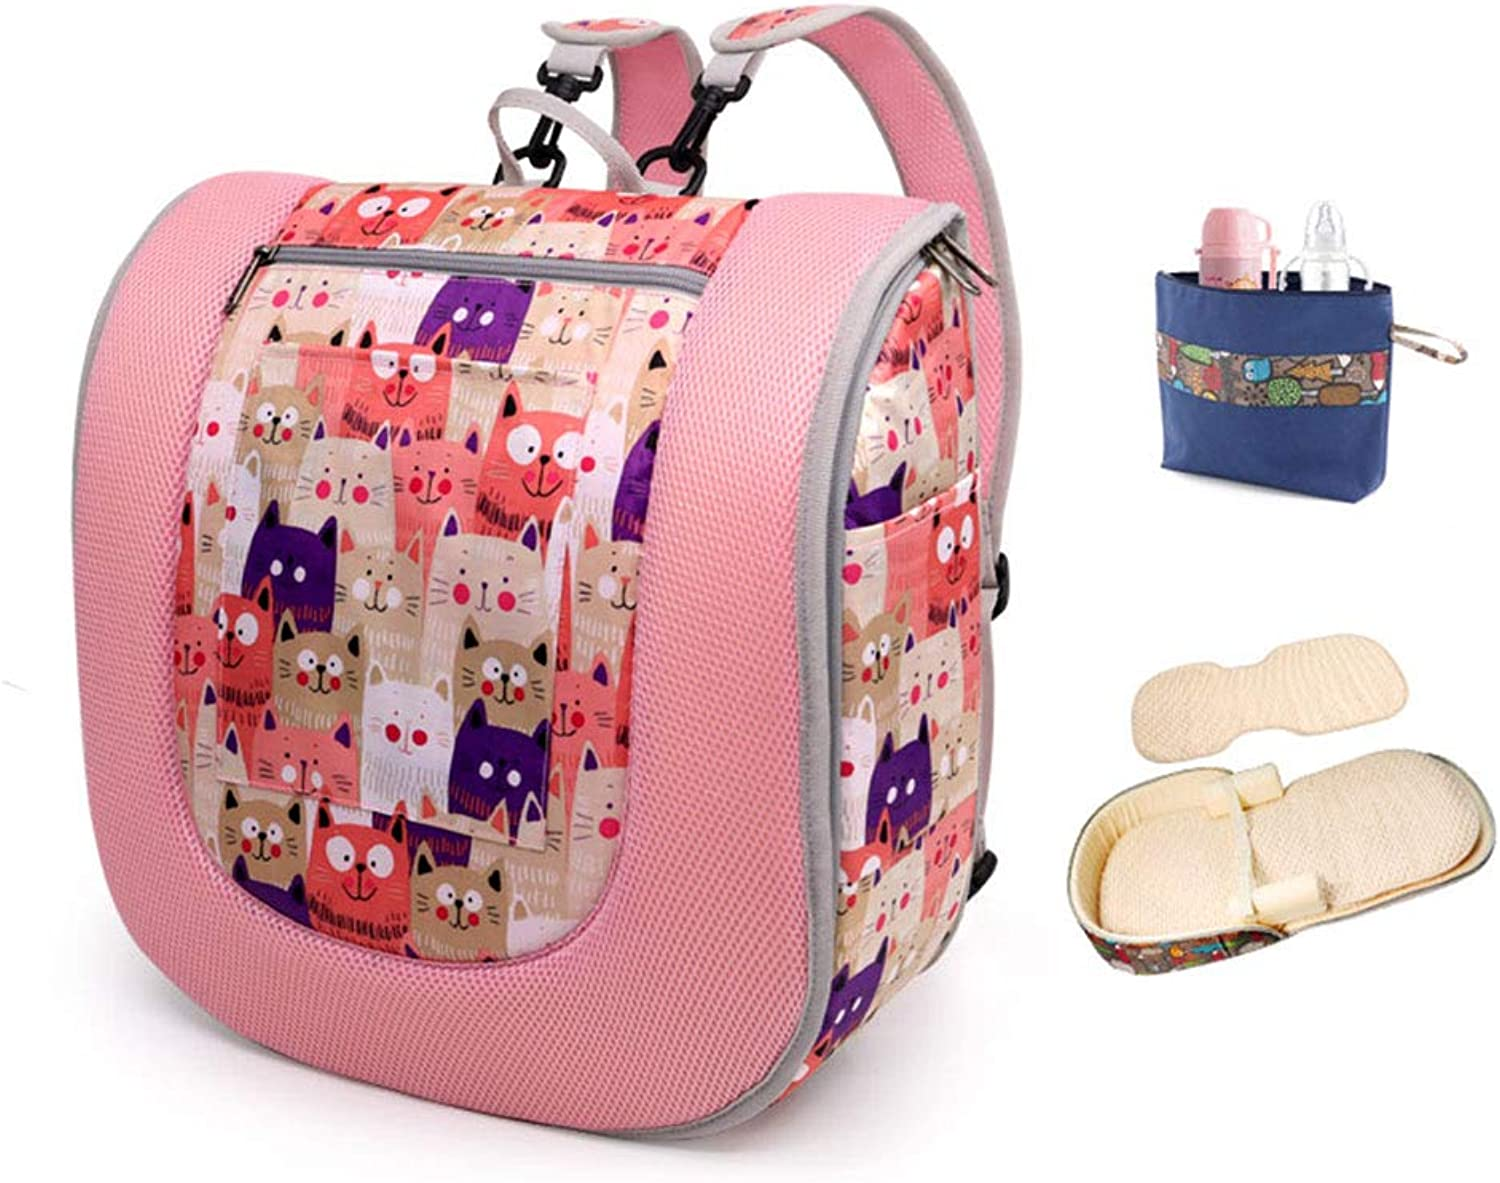 HUIFA Portable Crib Multi-Function Folding Anti-Pressure Bed can Sleep can be Used as a Backpack Baby Bed Suitable for 0-8 Months Baby 86  41cm (color   Storage Bag+Mattress, Size   86  41cm)